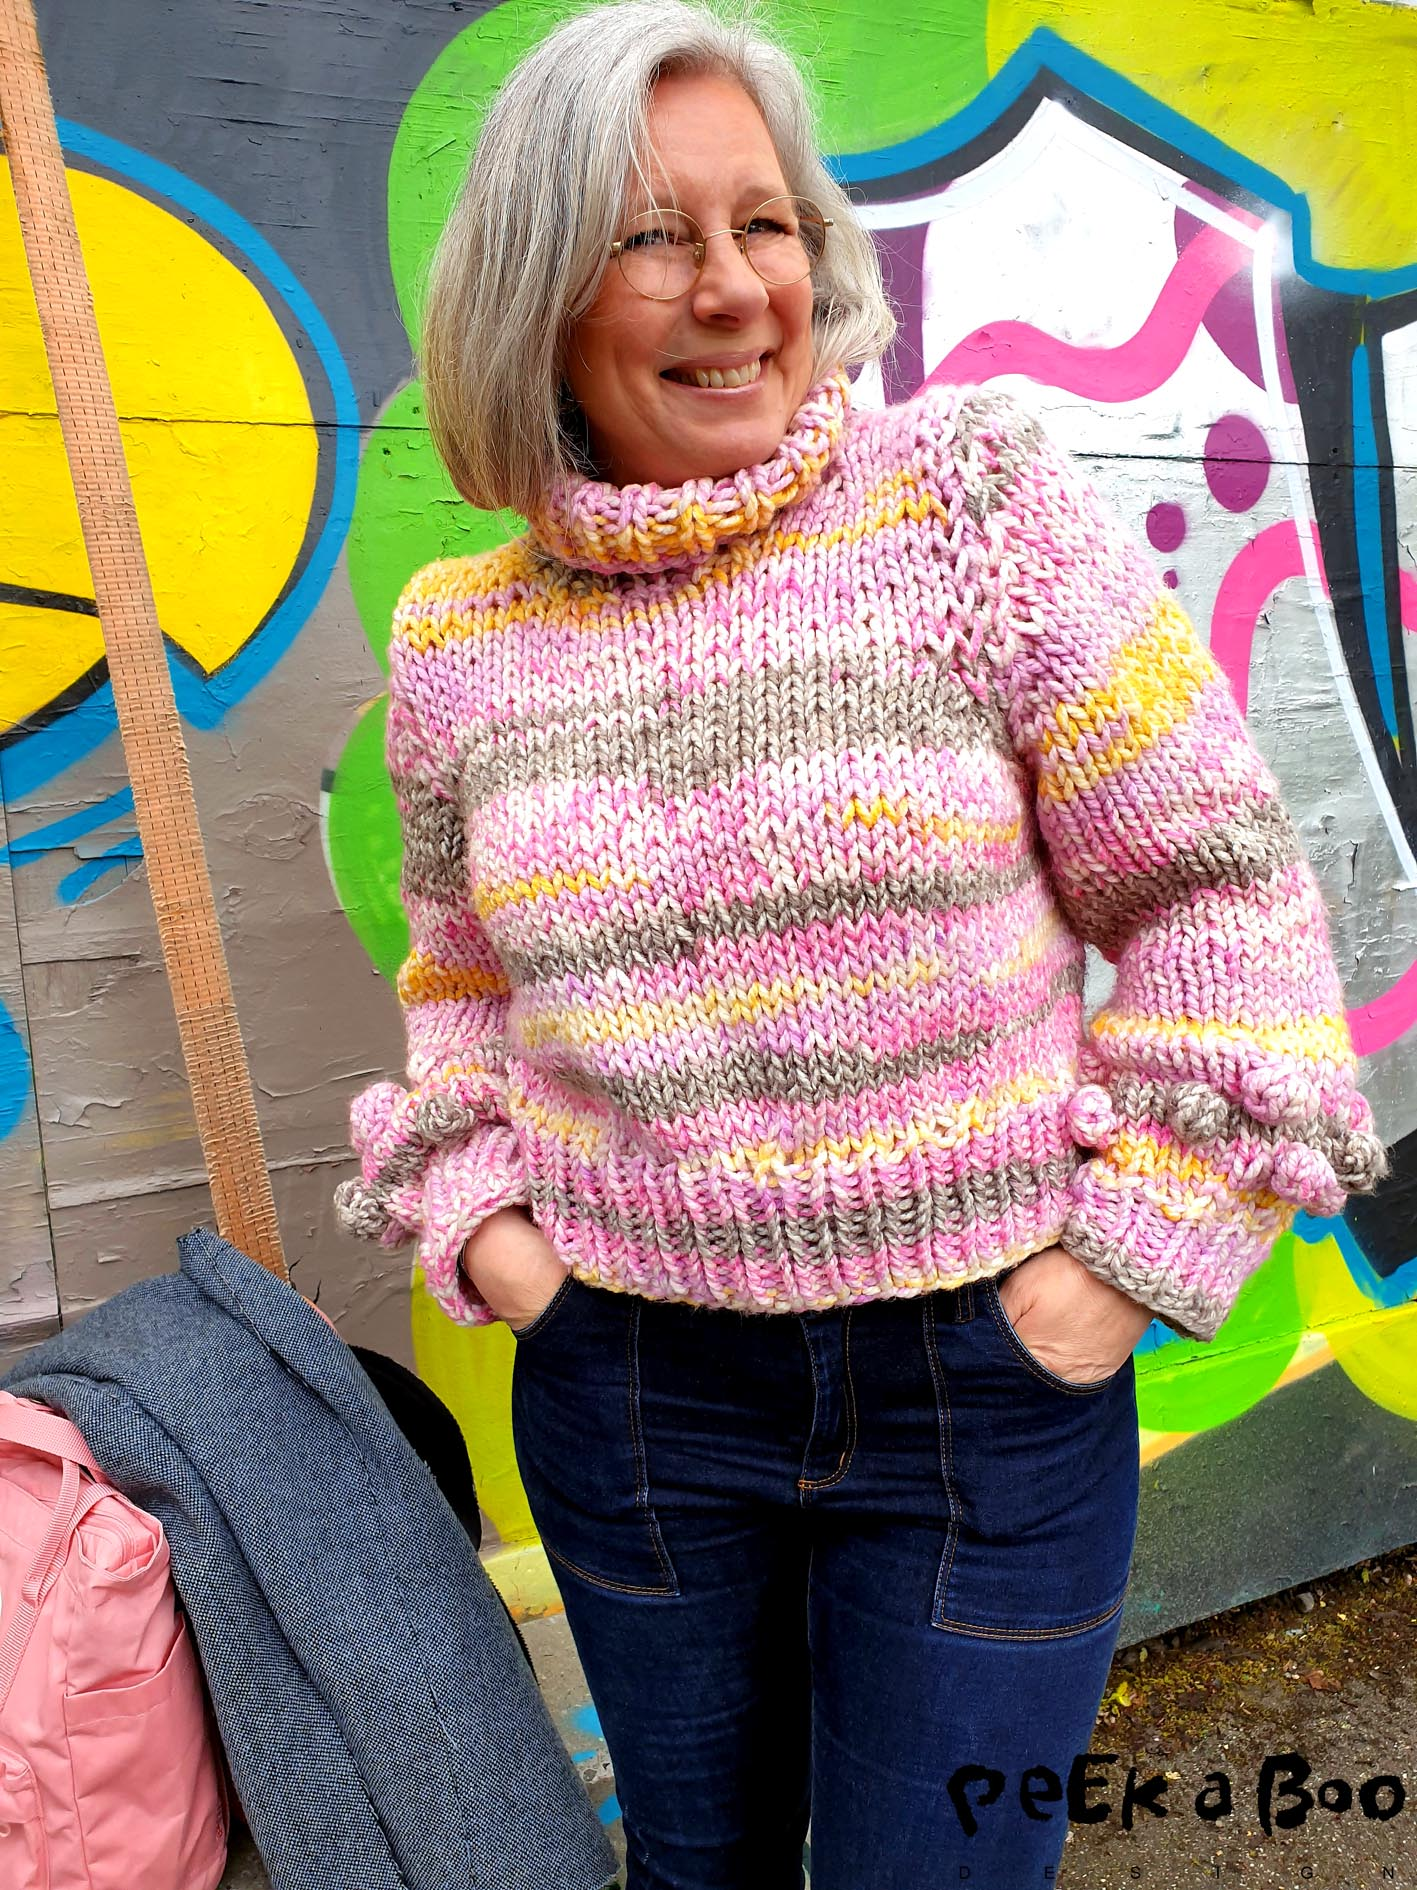 The finished bubble sweater